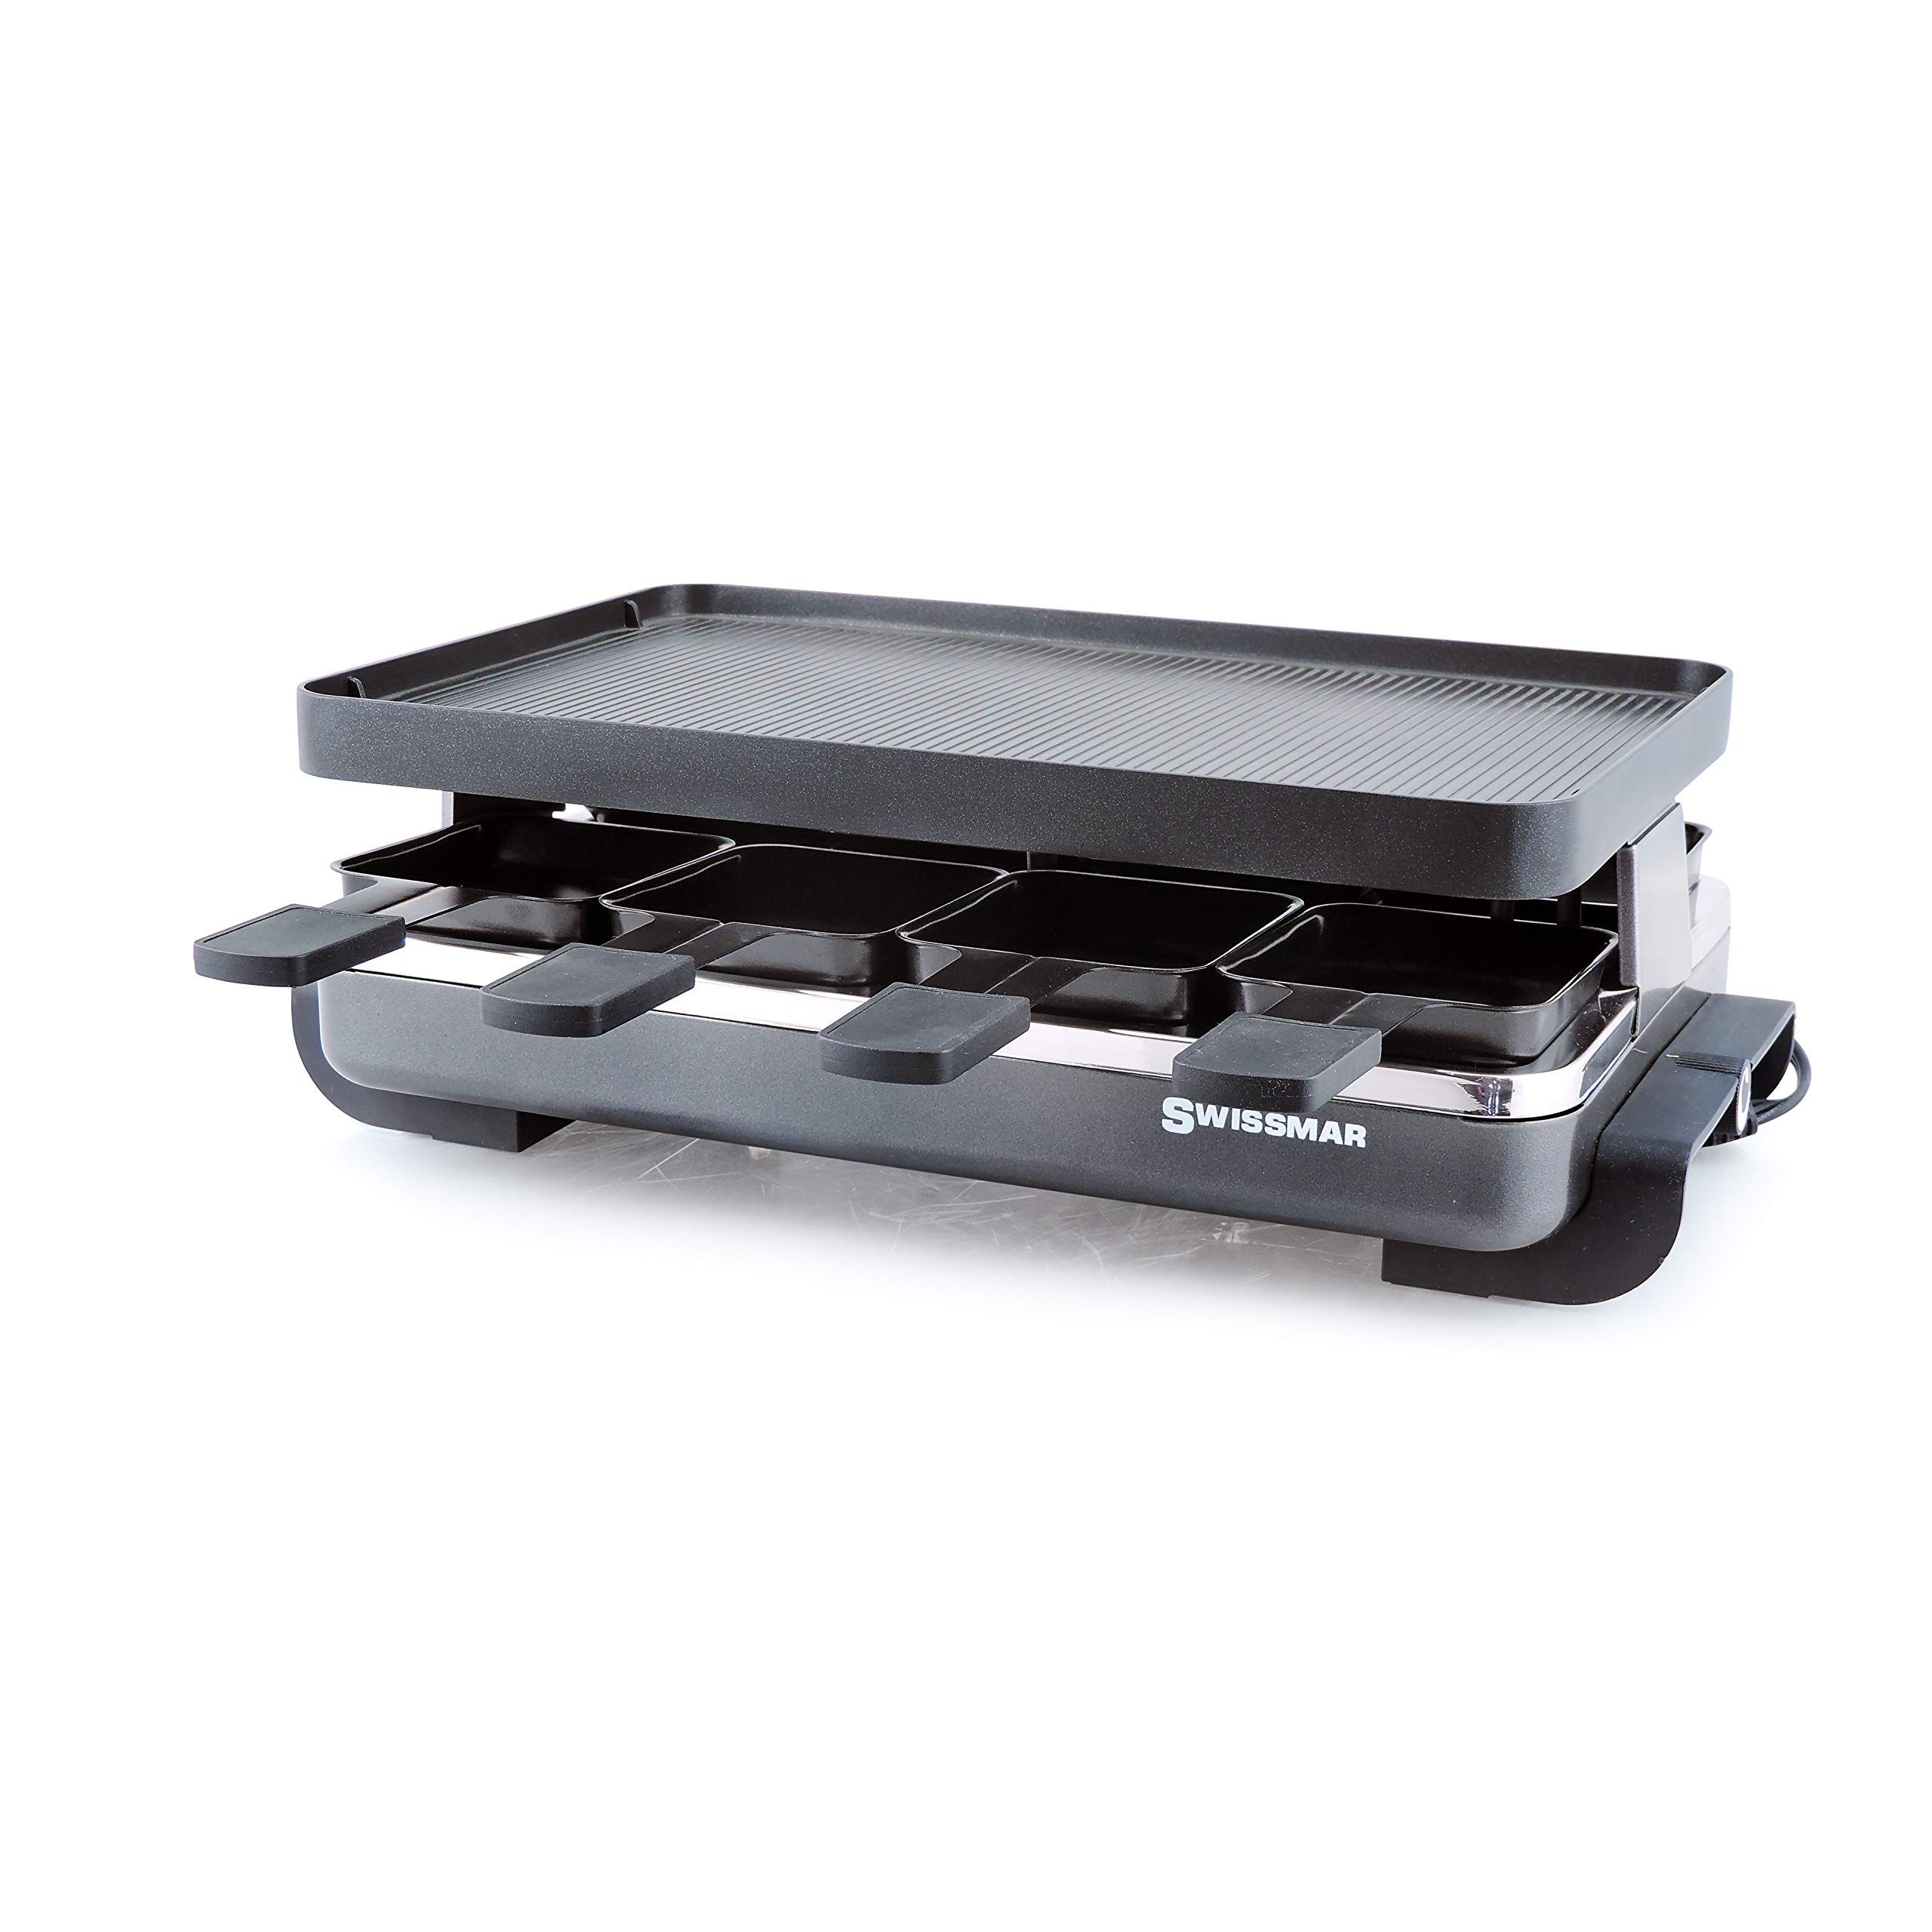 Swissmar KF-77041 Classic 8-Person Raclette with Reversible Cast Aluminum Non-Stick Grill Plate/Crepe Top, Black by Swissmar